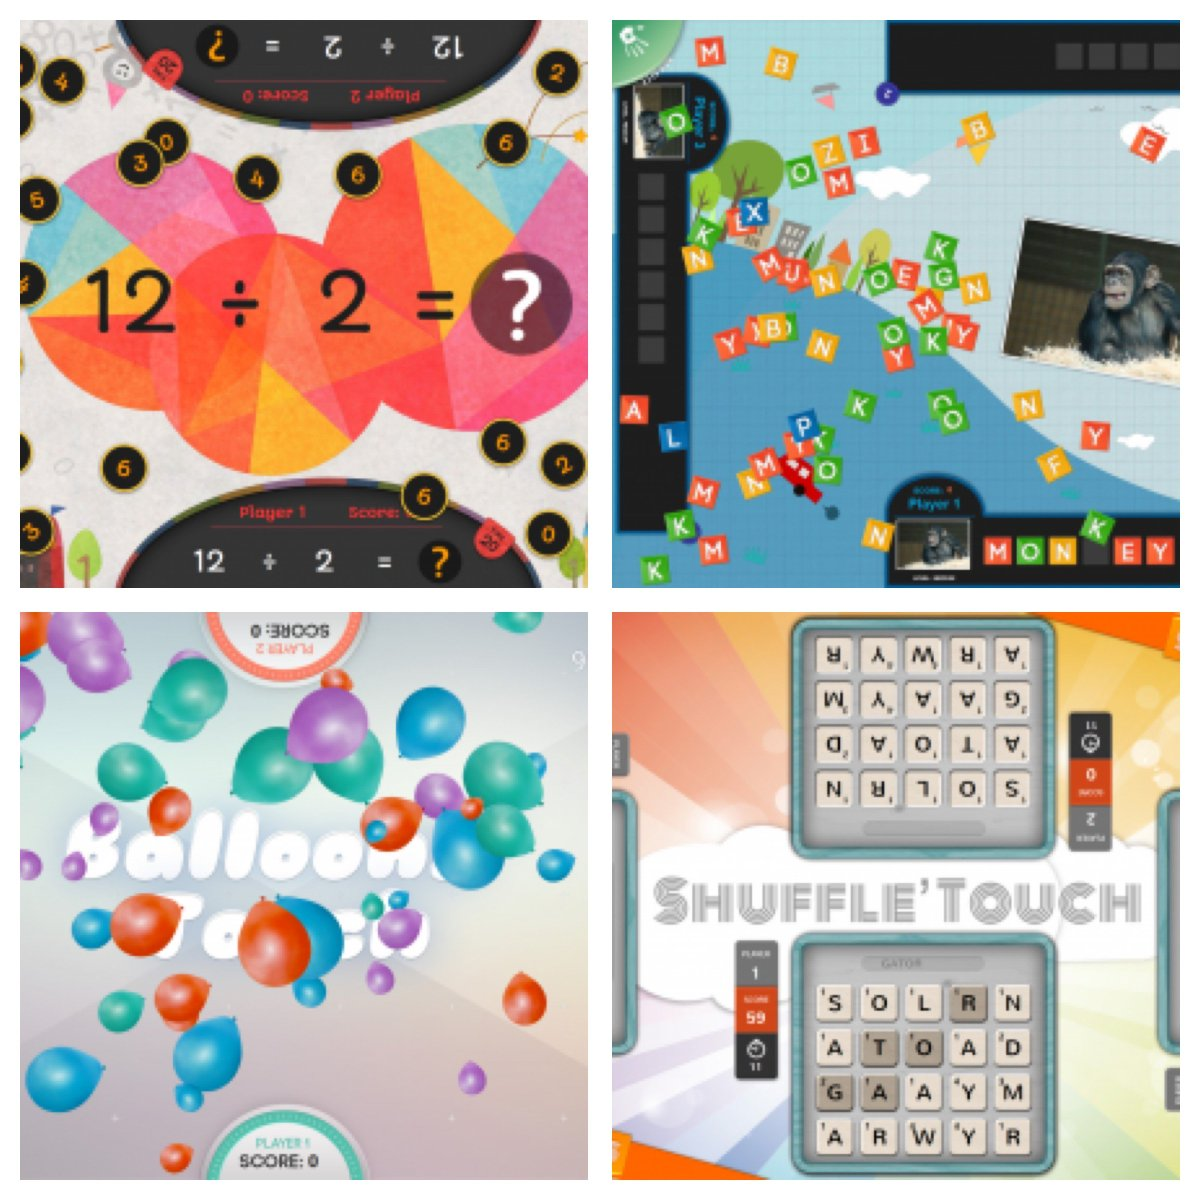 Don&#39;t miss @TeamSchutmaat showcasing the PLAY #multitouch #touchtable at #MLA17AC Booth No. 7  http:// ow.ly/VHW930fXQw6  &nbsp;   #EdTech #Librarians <br>http://pic.twitter.com/bOmA8NObEA